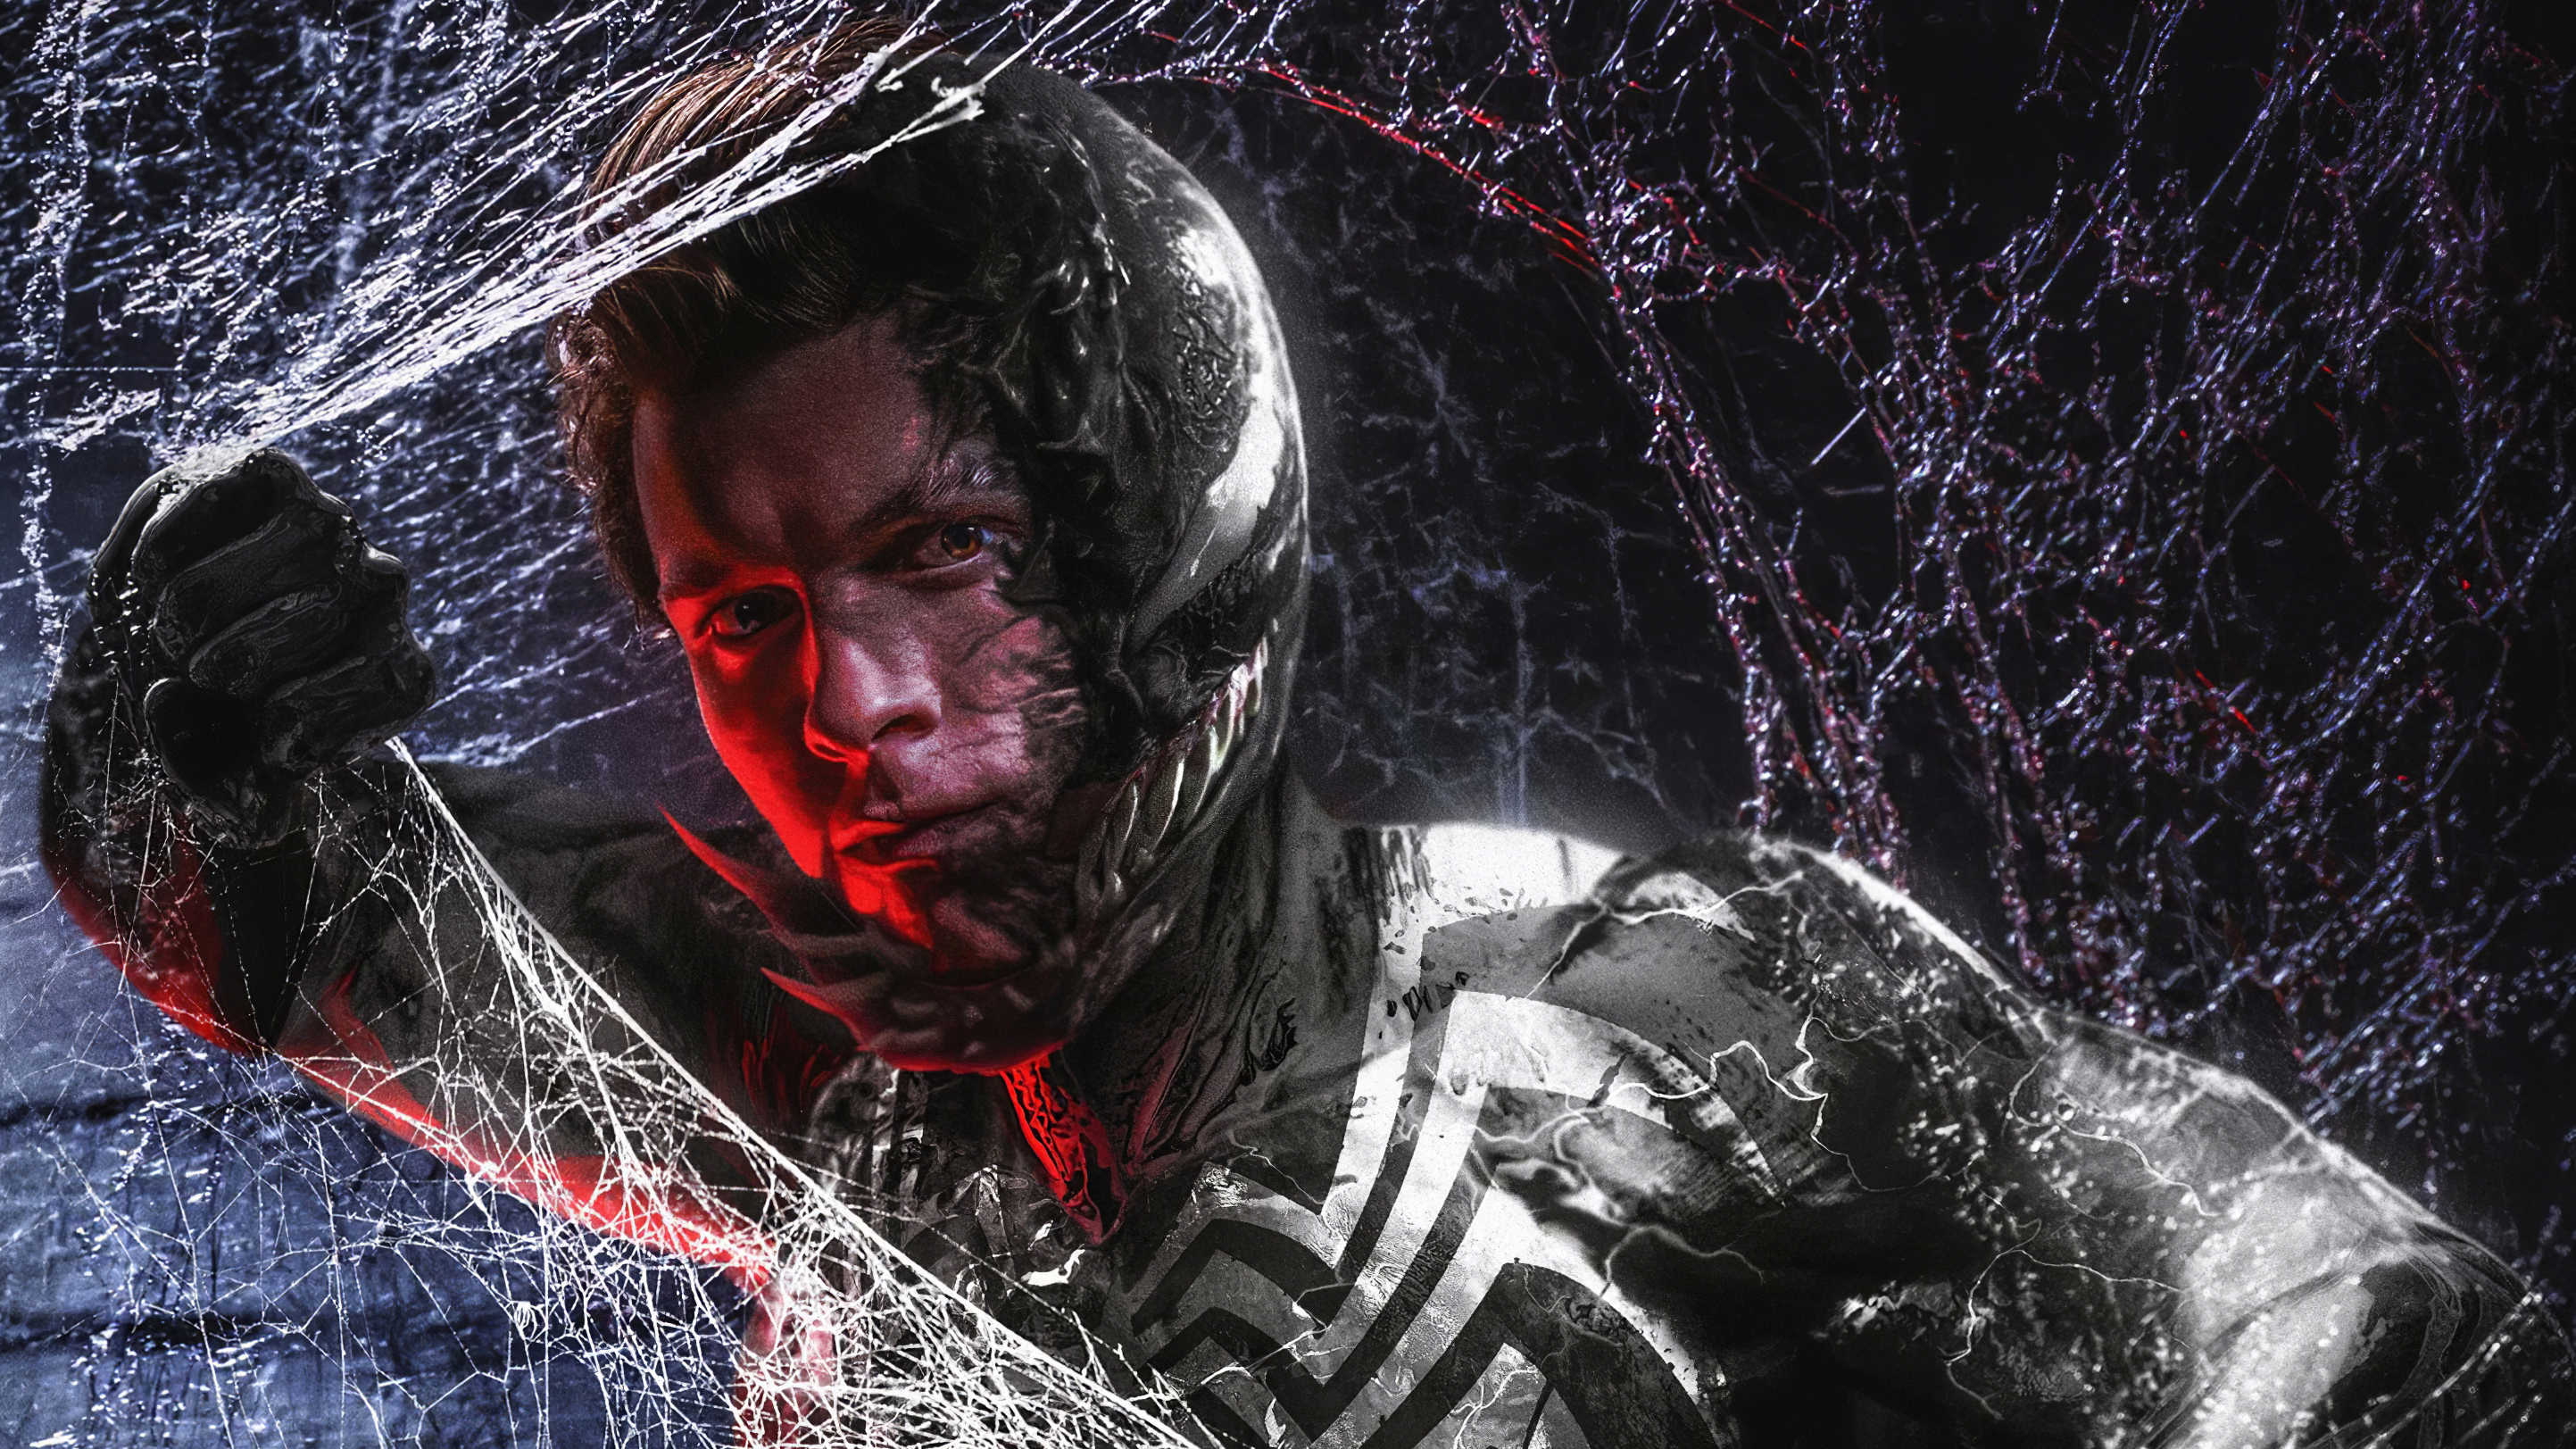 Wallpaper Venom: Let There Be Carnage Movie 2021